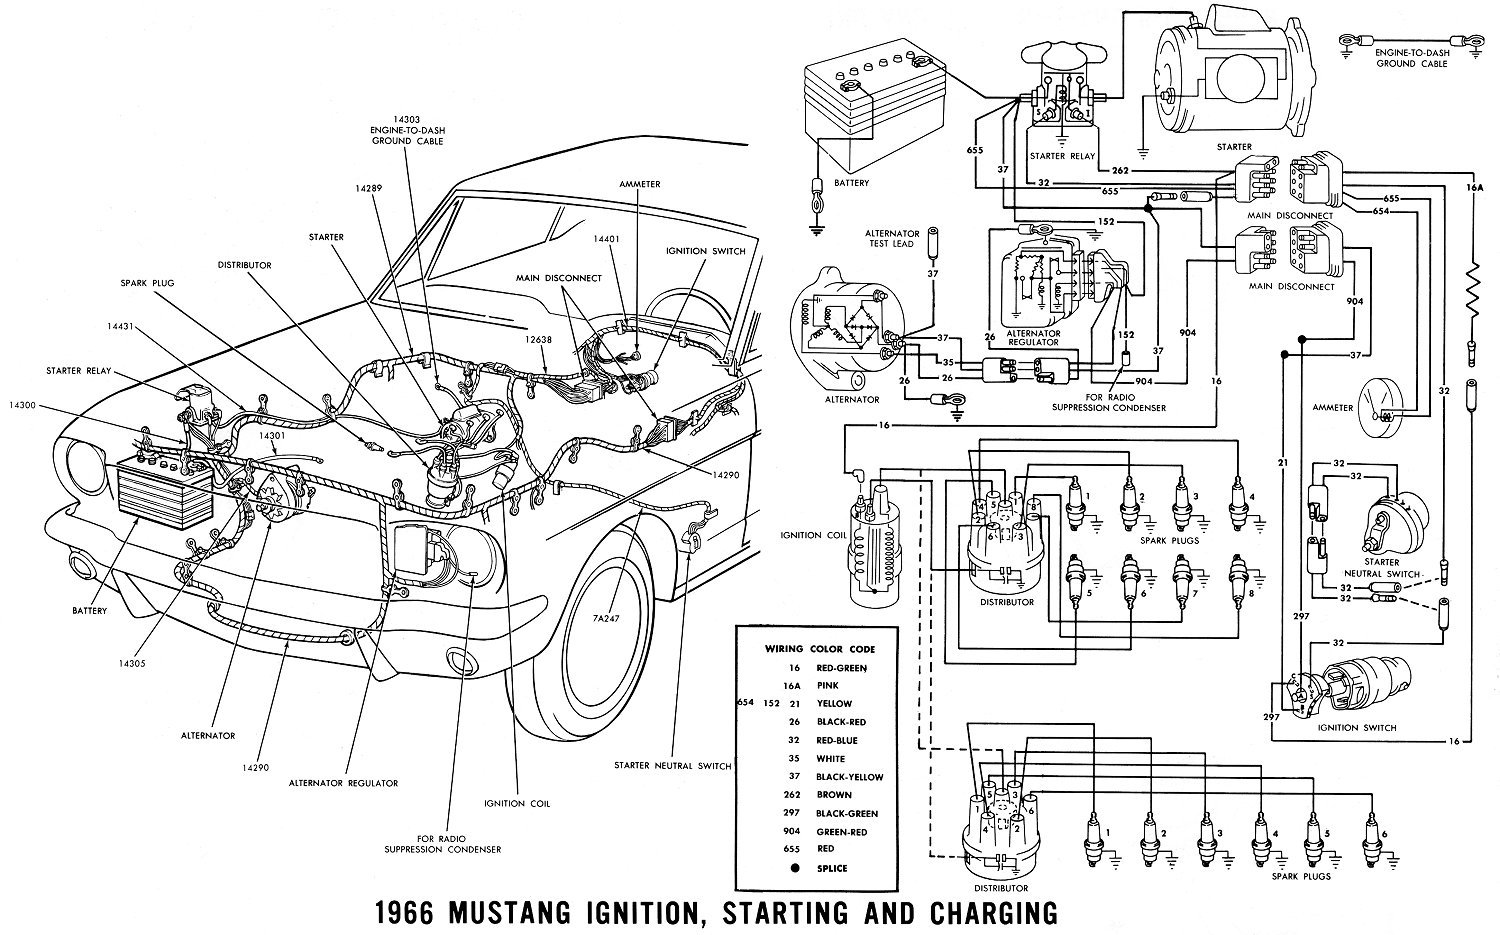 97 Town Car Engine Diagram Wiring Library For 1997 Lincoln 2004 Radio Images Gallery 1966 Mustang Ignition Switch What